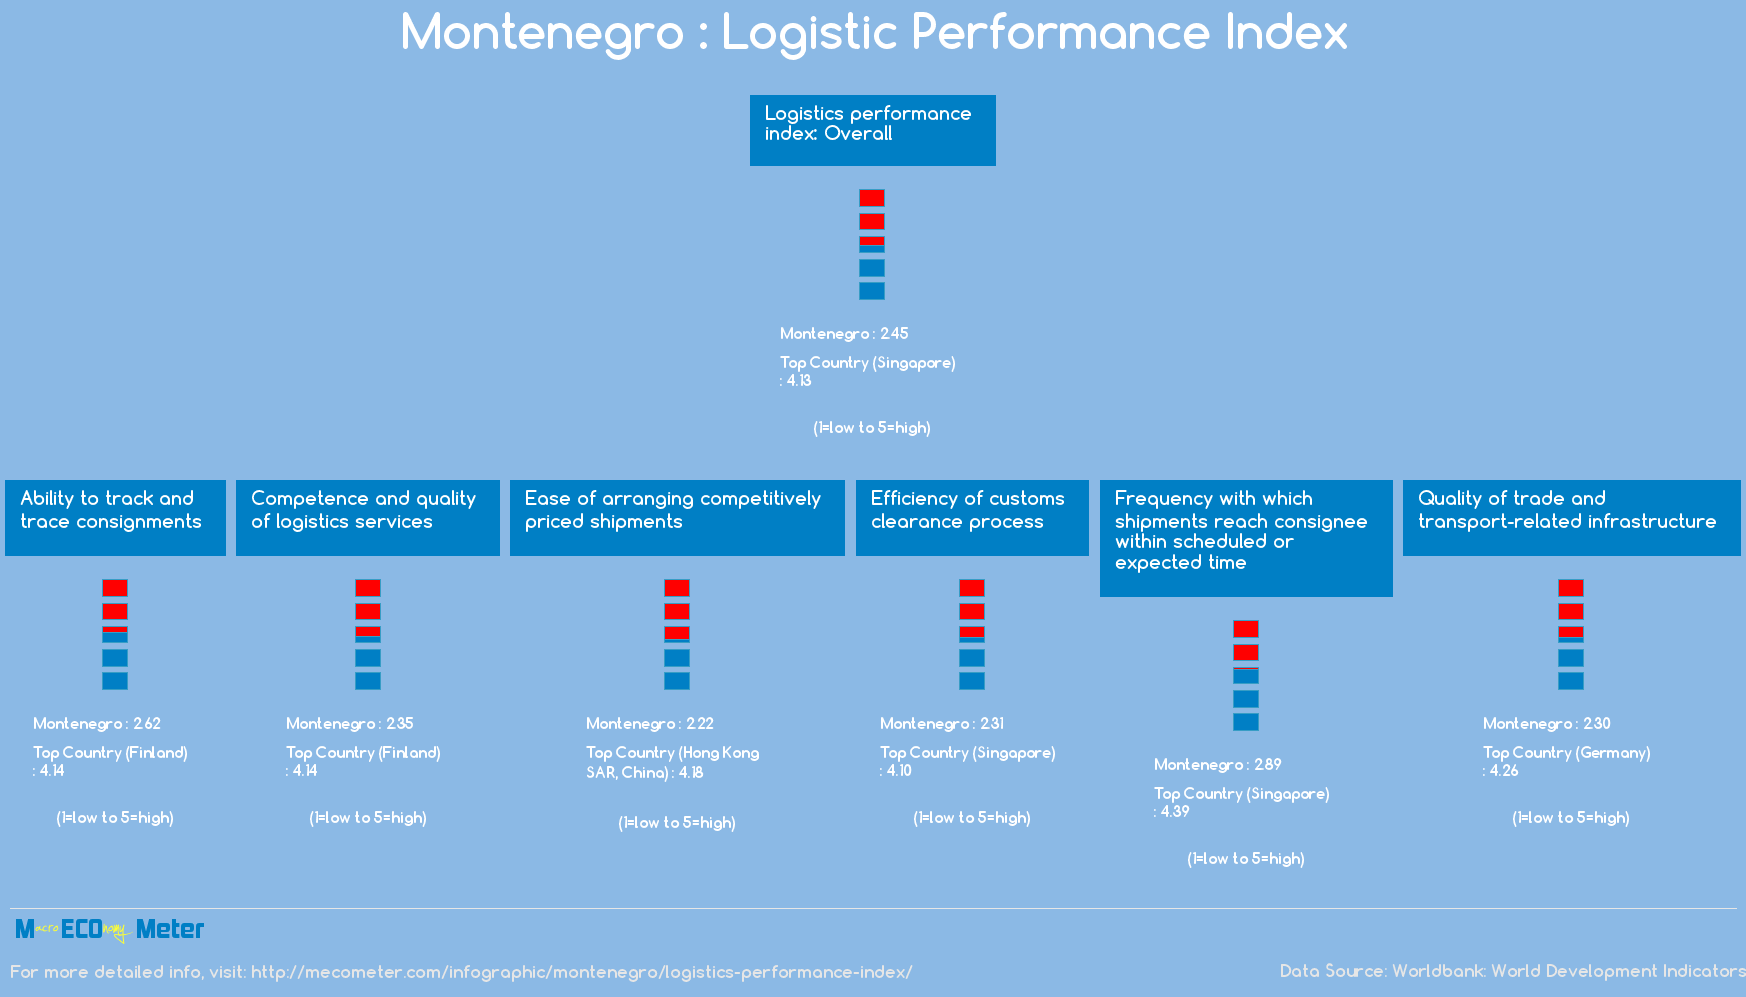 Montenegro : Logistic Performance Index